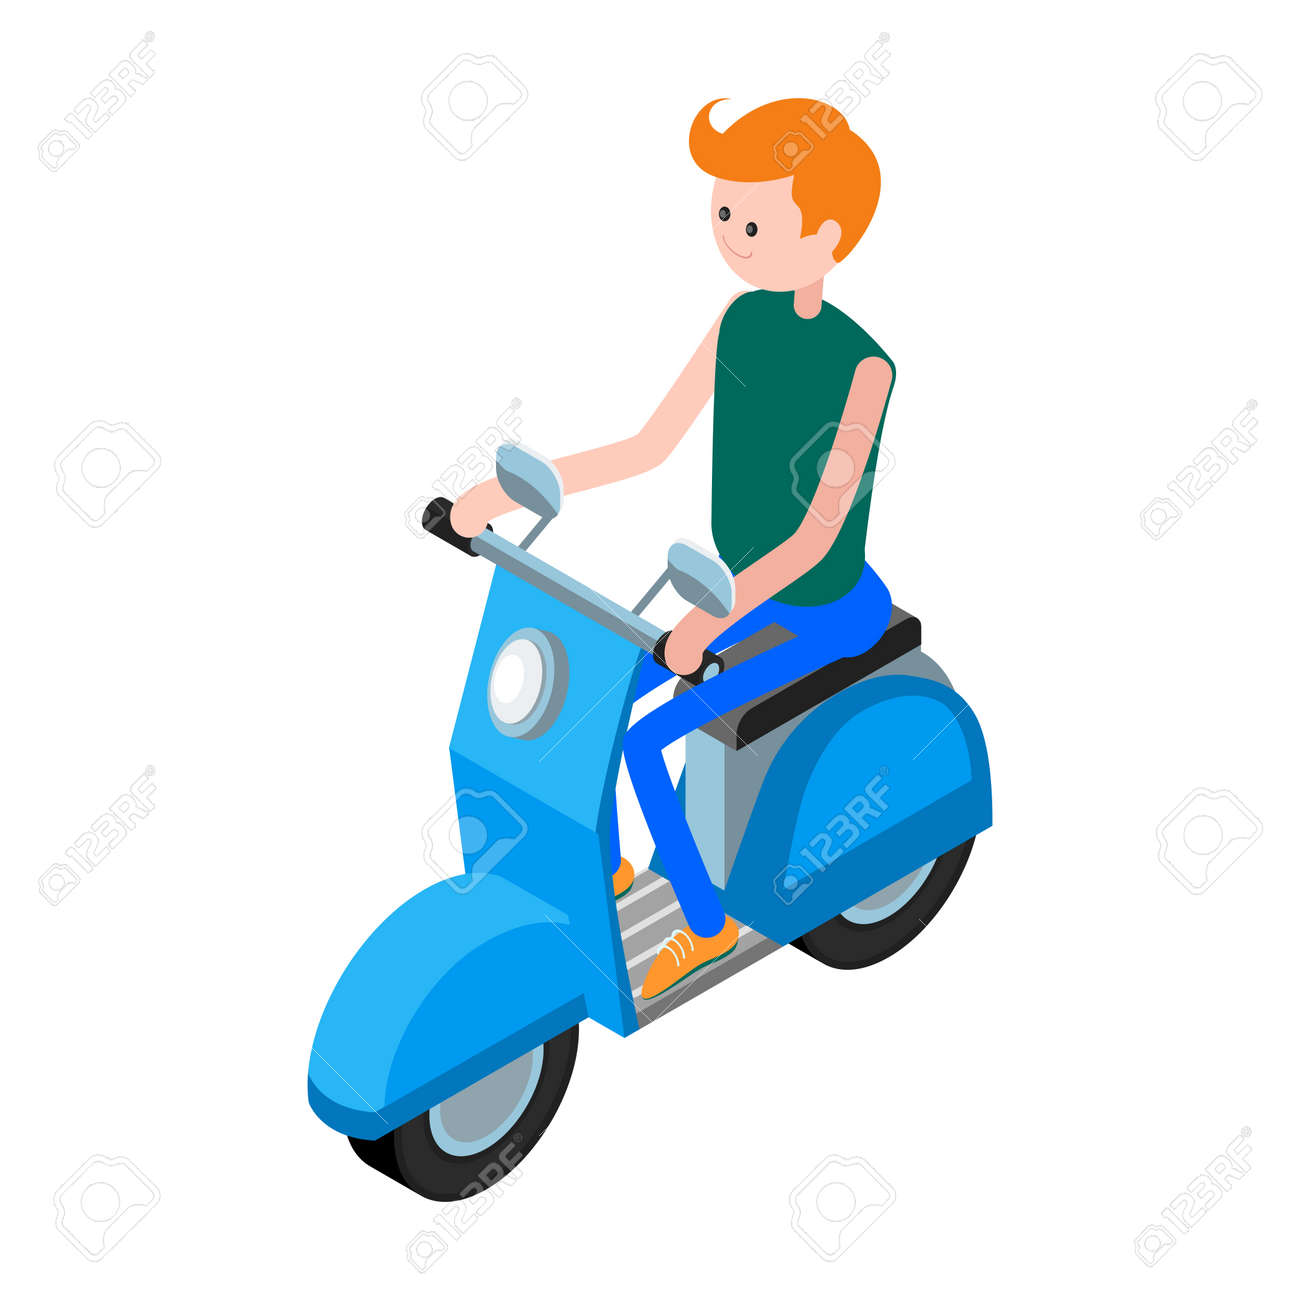 Isometric icon scooter with a driver  3d icon scooter isolated